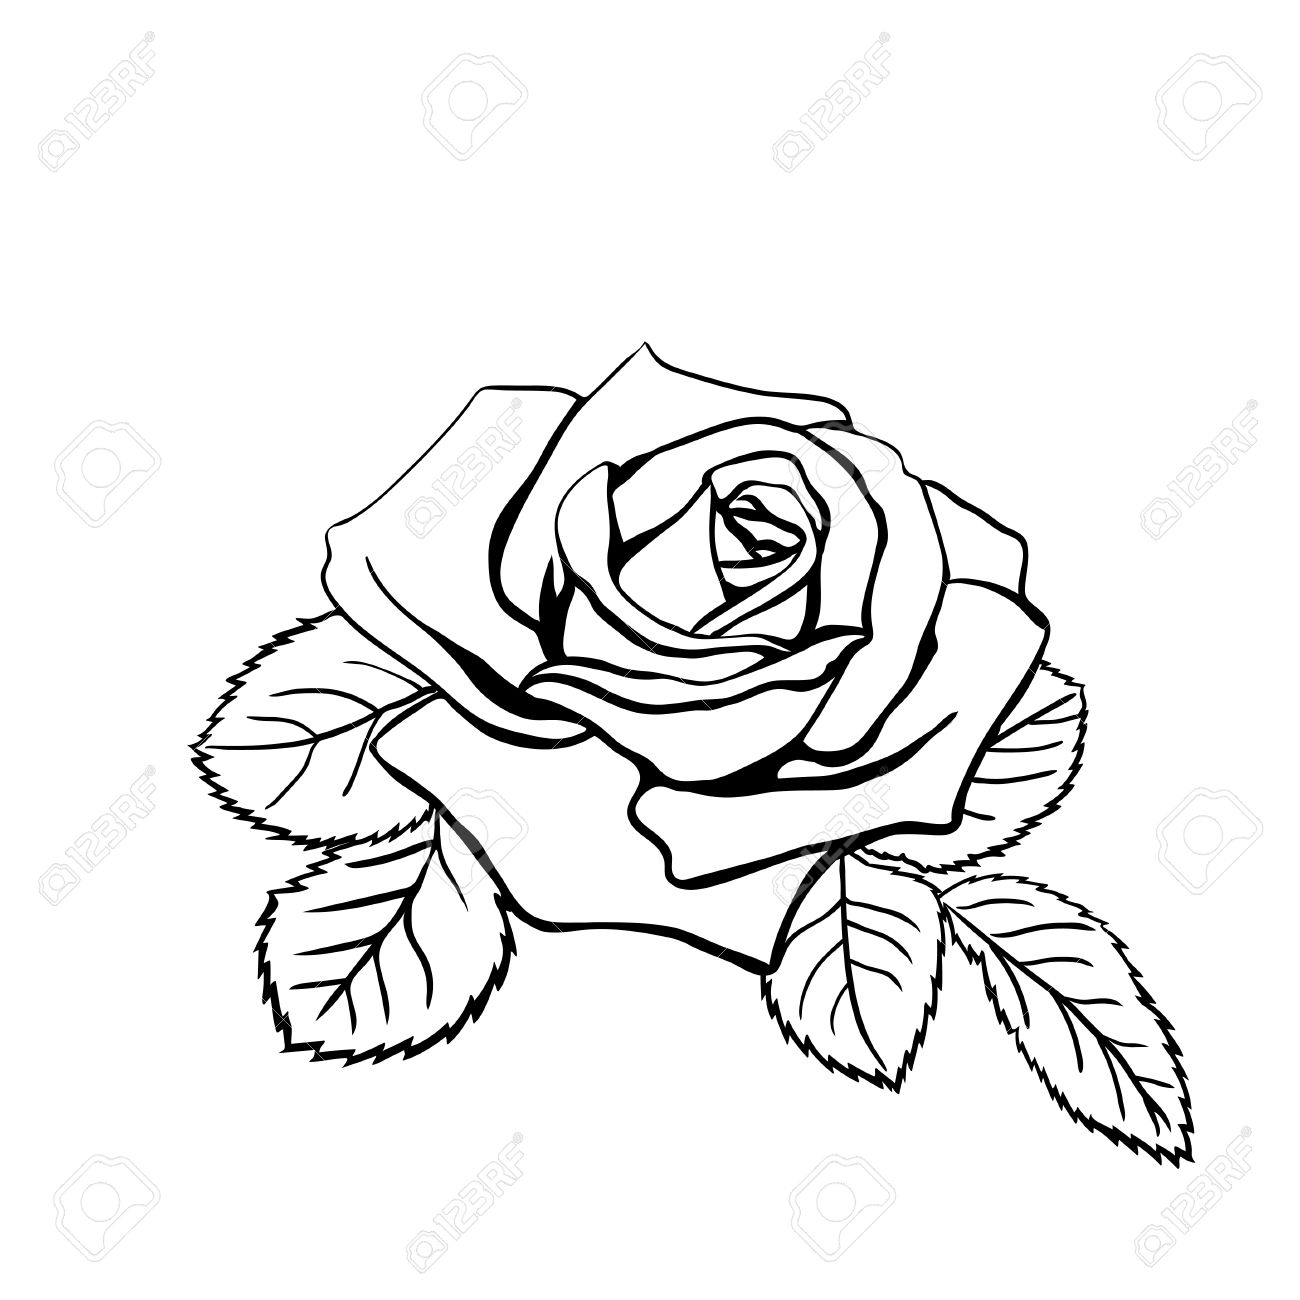 1300x1300 Head And Roses Tattoo Stock Photos. Royalty Free Business Images